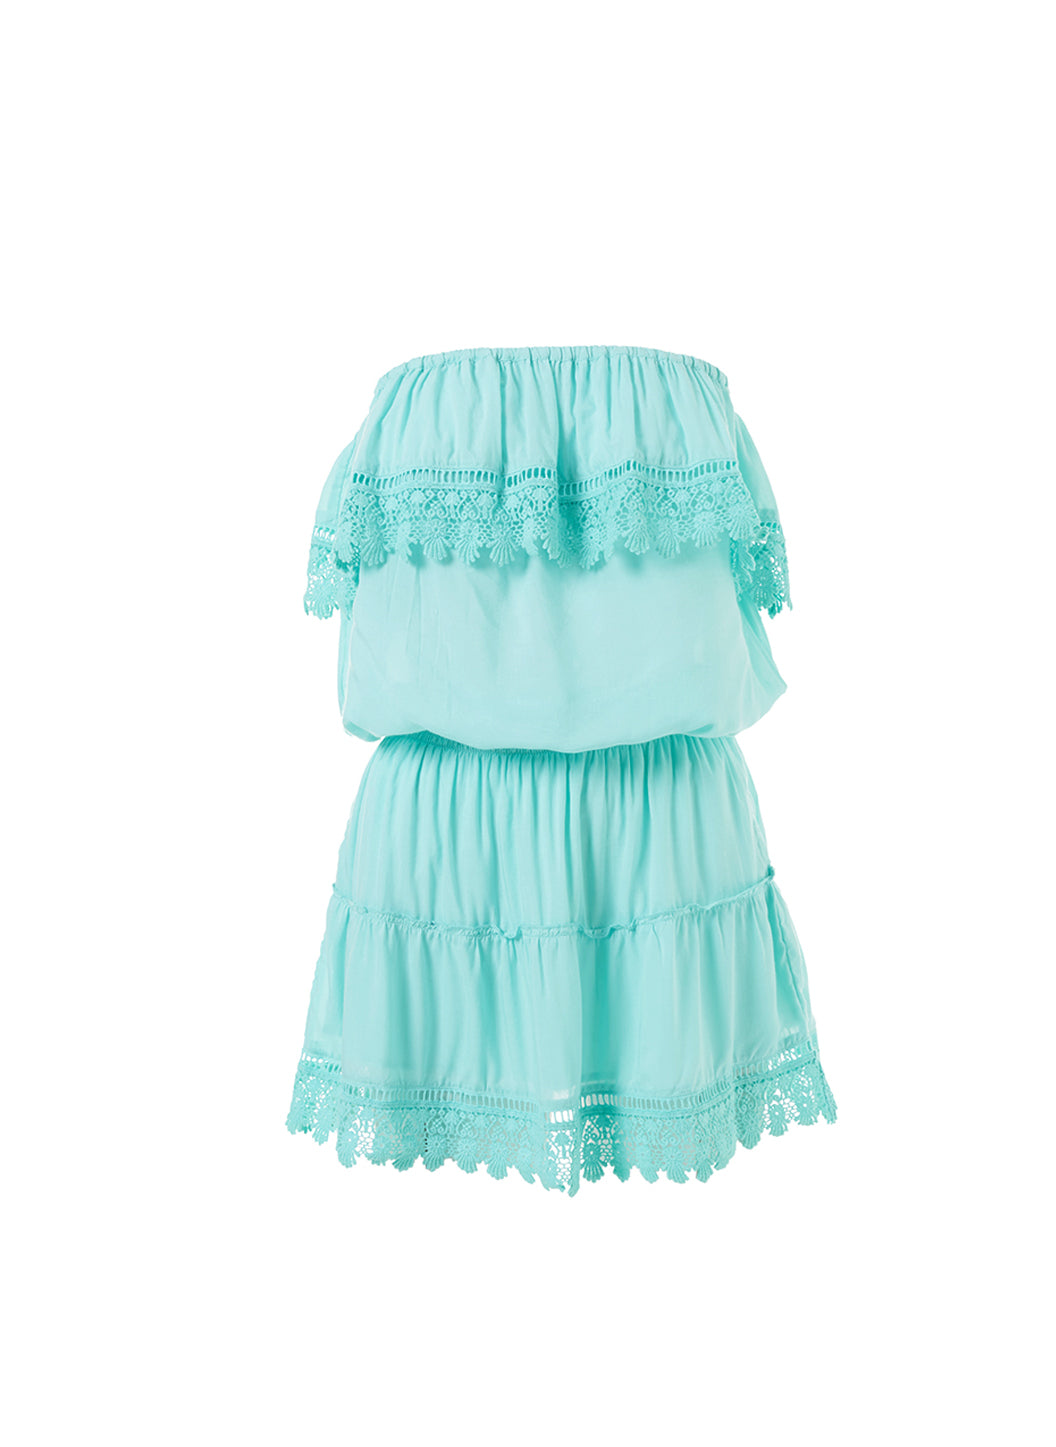 Joy Sky Bandeau Embroidered Frill Short Dress